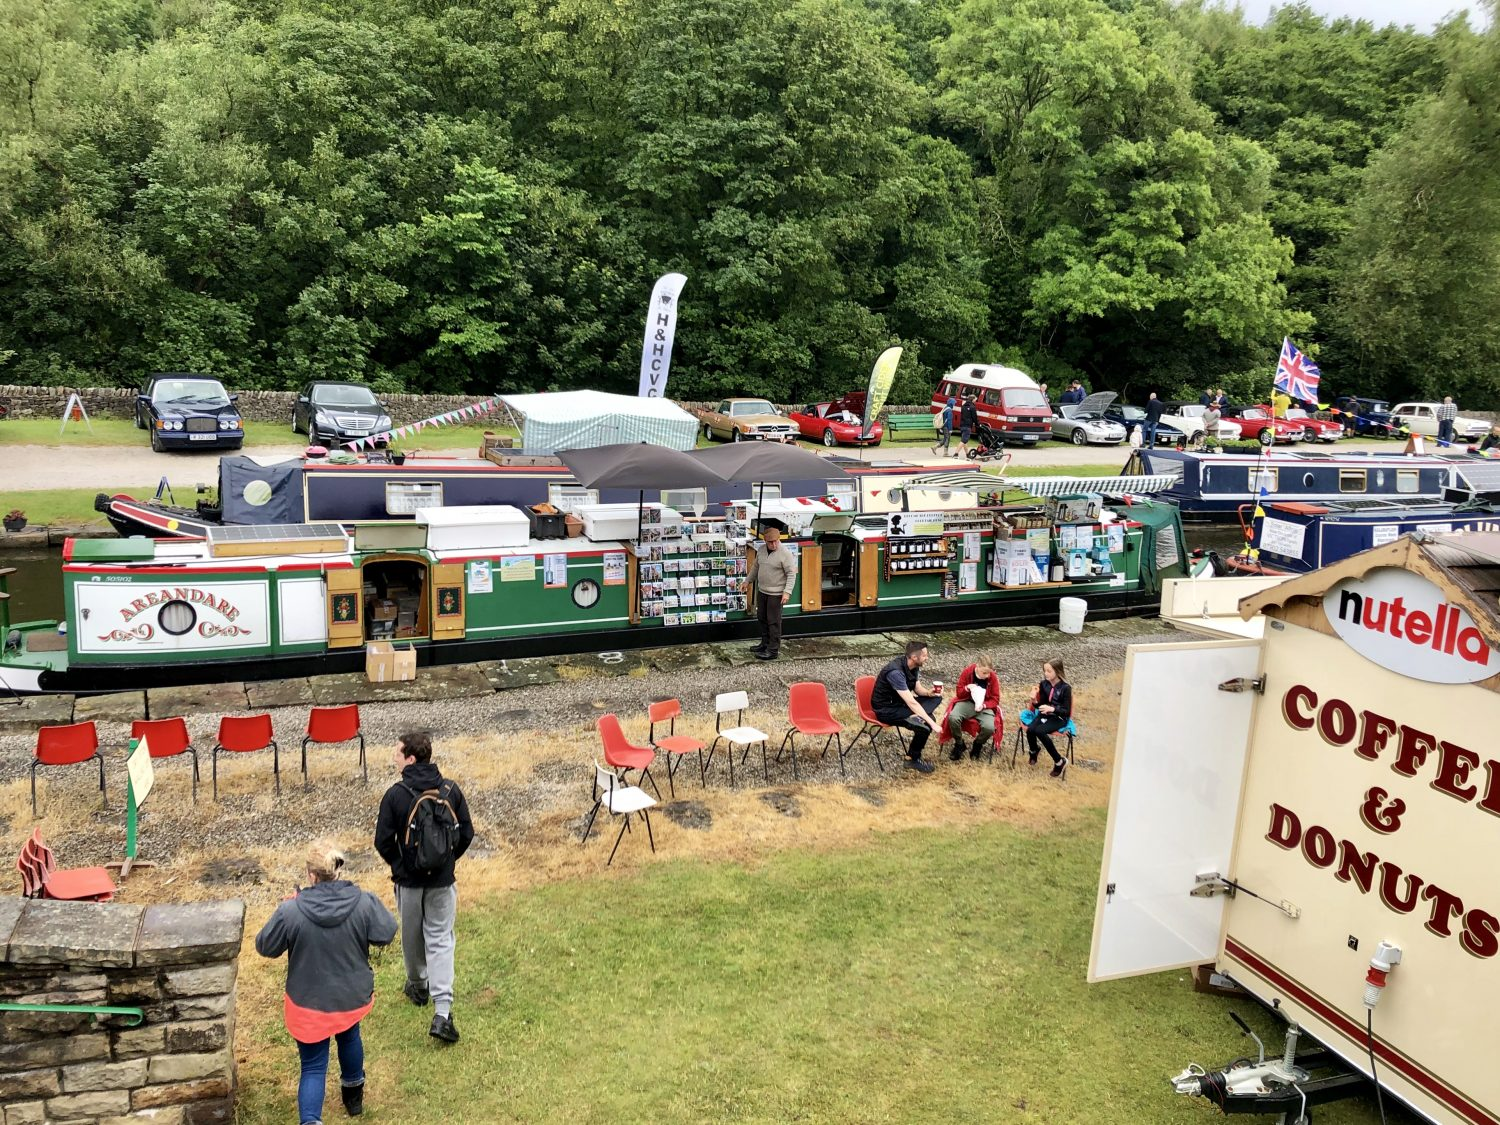 The Home Brew Boat at Bugsworth Family Fun Day 2019